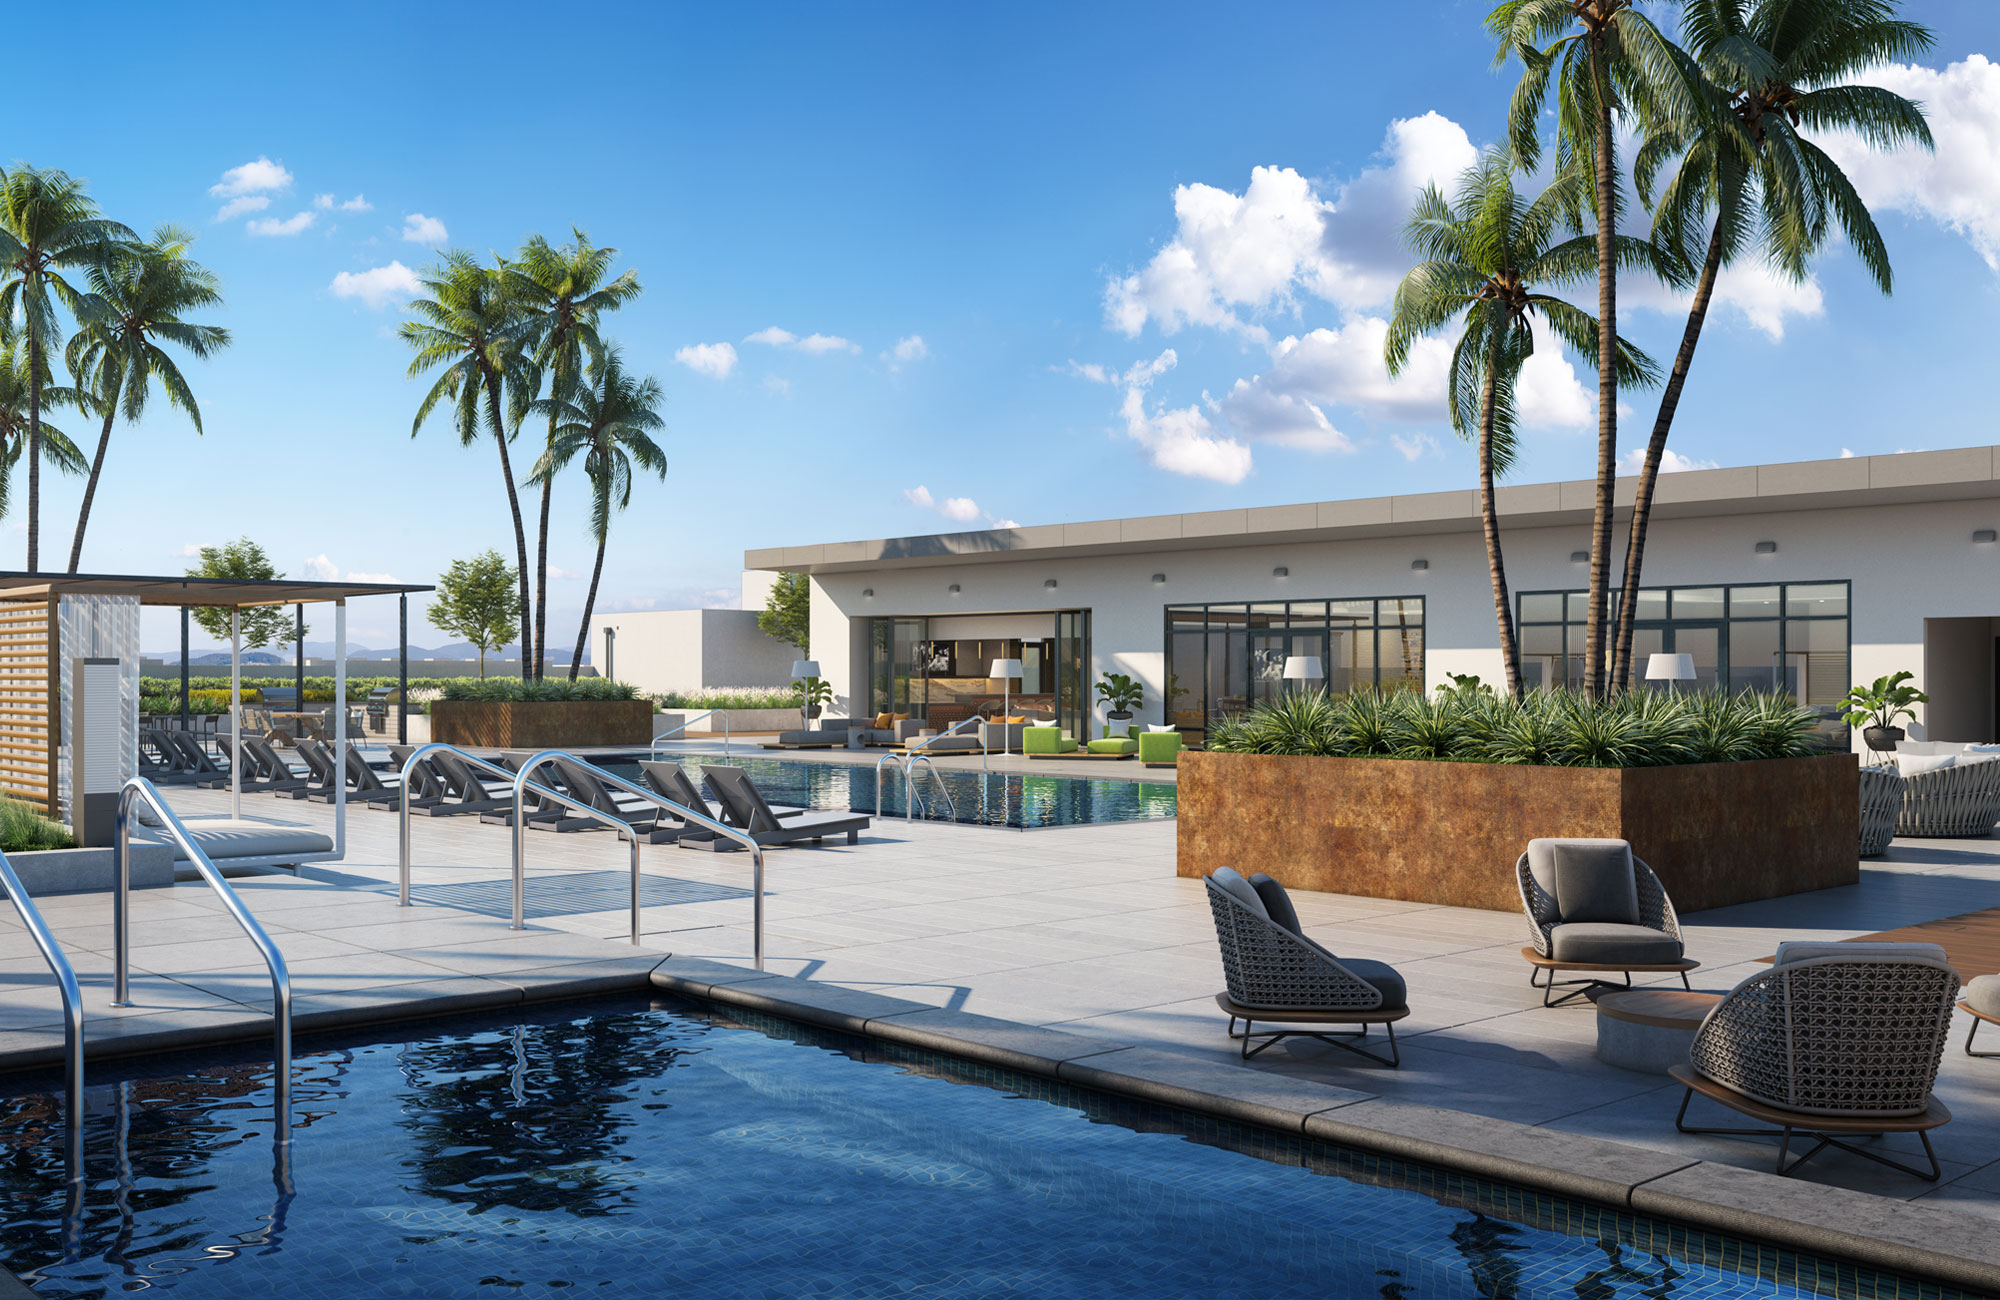 Swimming pool in foreground with second swimming pool, lounge chairs, palm trees in raised planter and modern single-story building in background